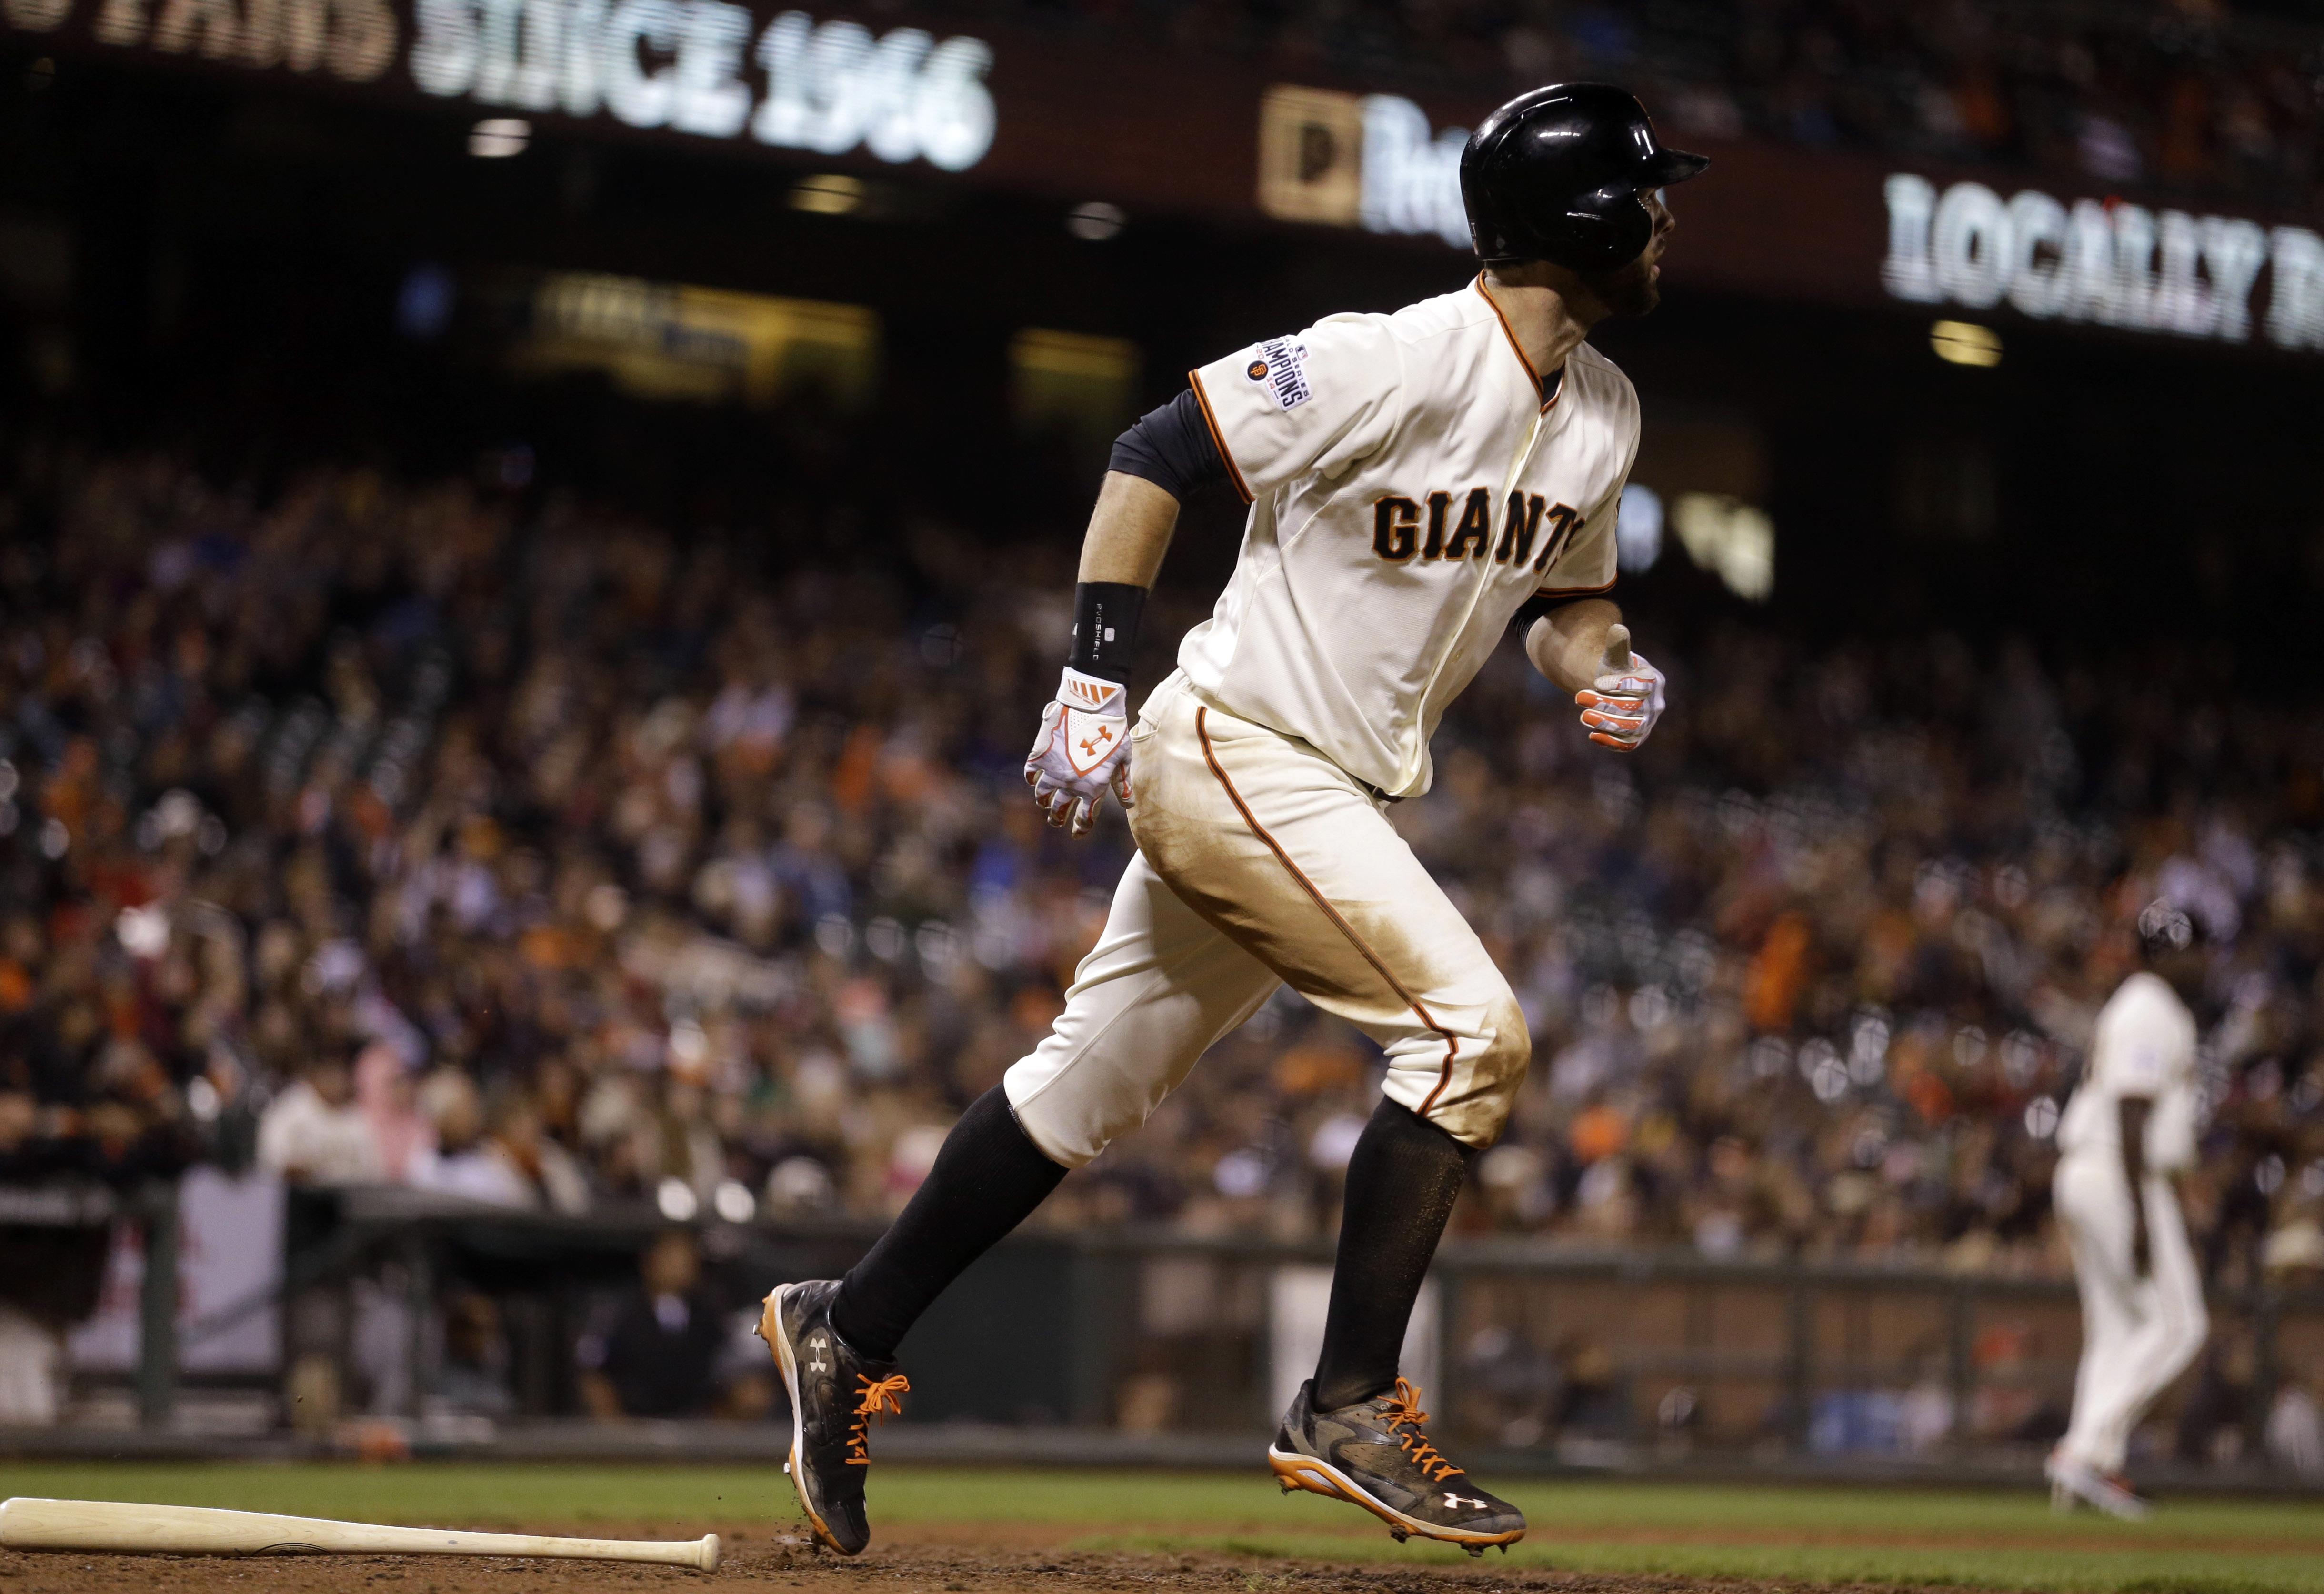 San Francisco Giants' Brandon Belt runs after hitting an RBI sacrifice fly against the Cincinnati Reds in the eighth inning of a baseball game Monday, Sept. 14, 2015, in San Francisco. (AP Photo/Ben Margot)